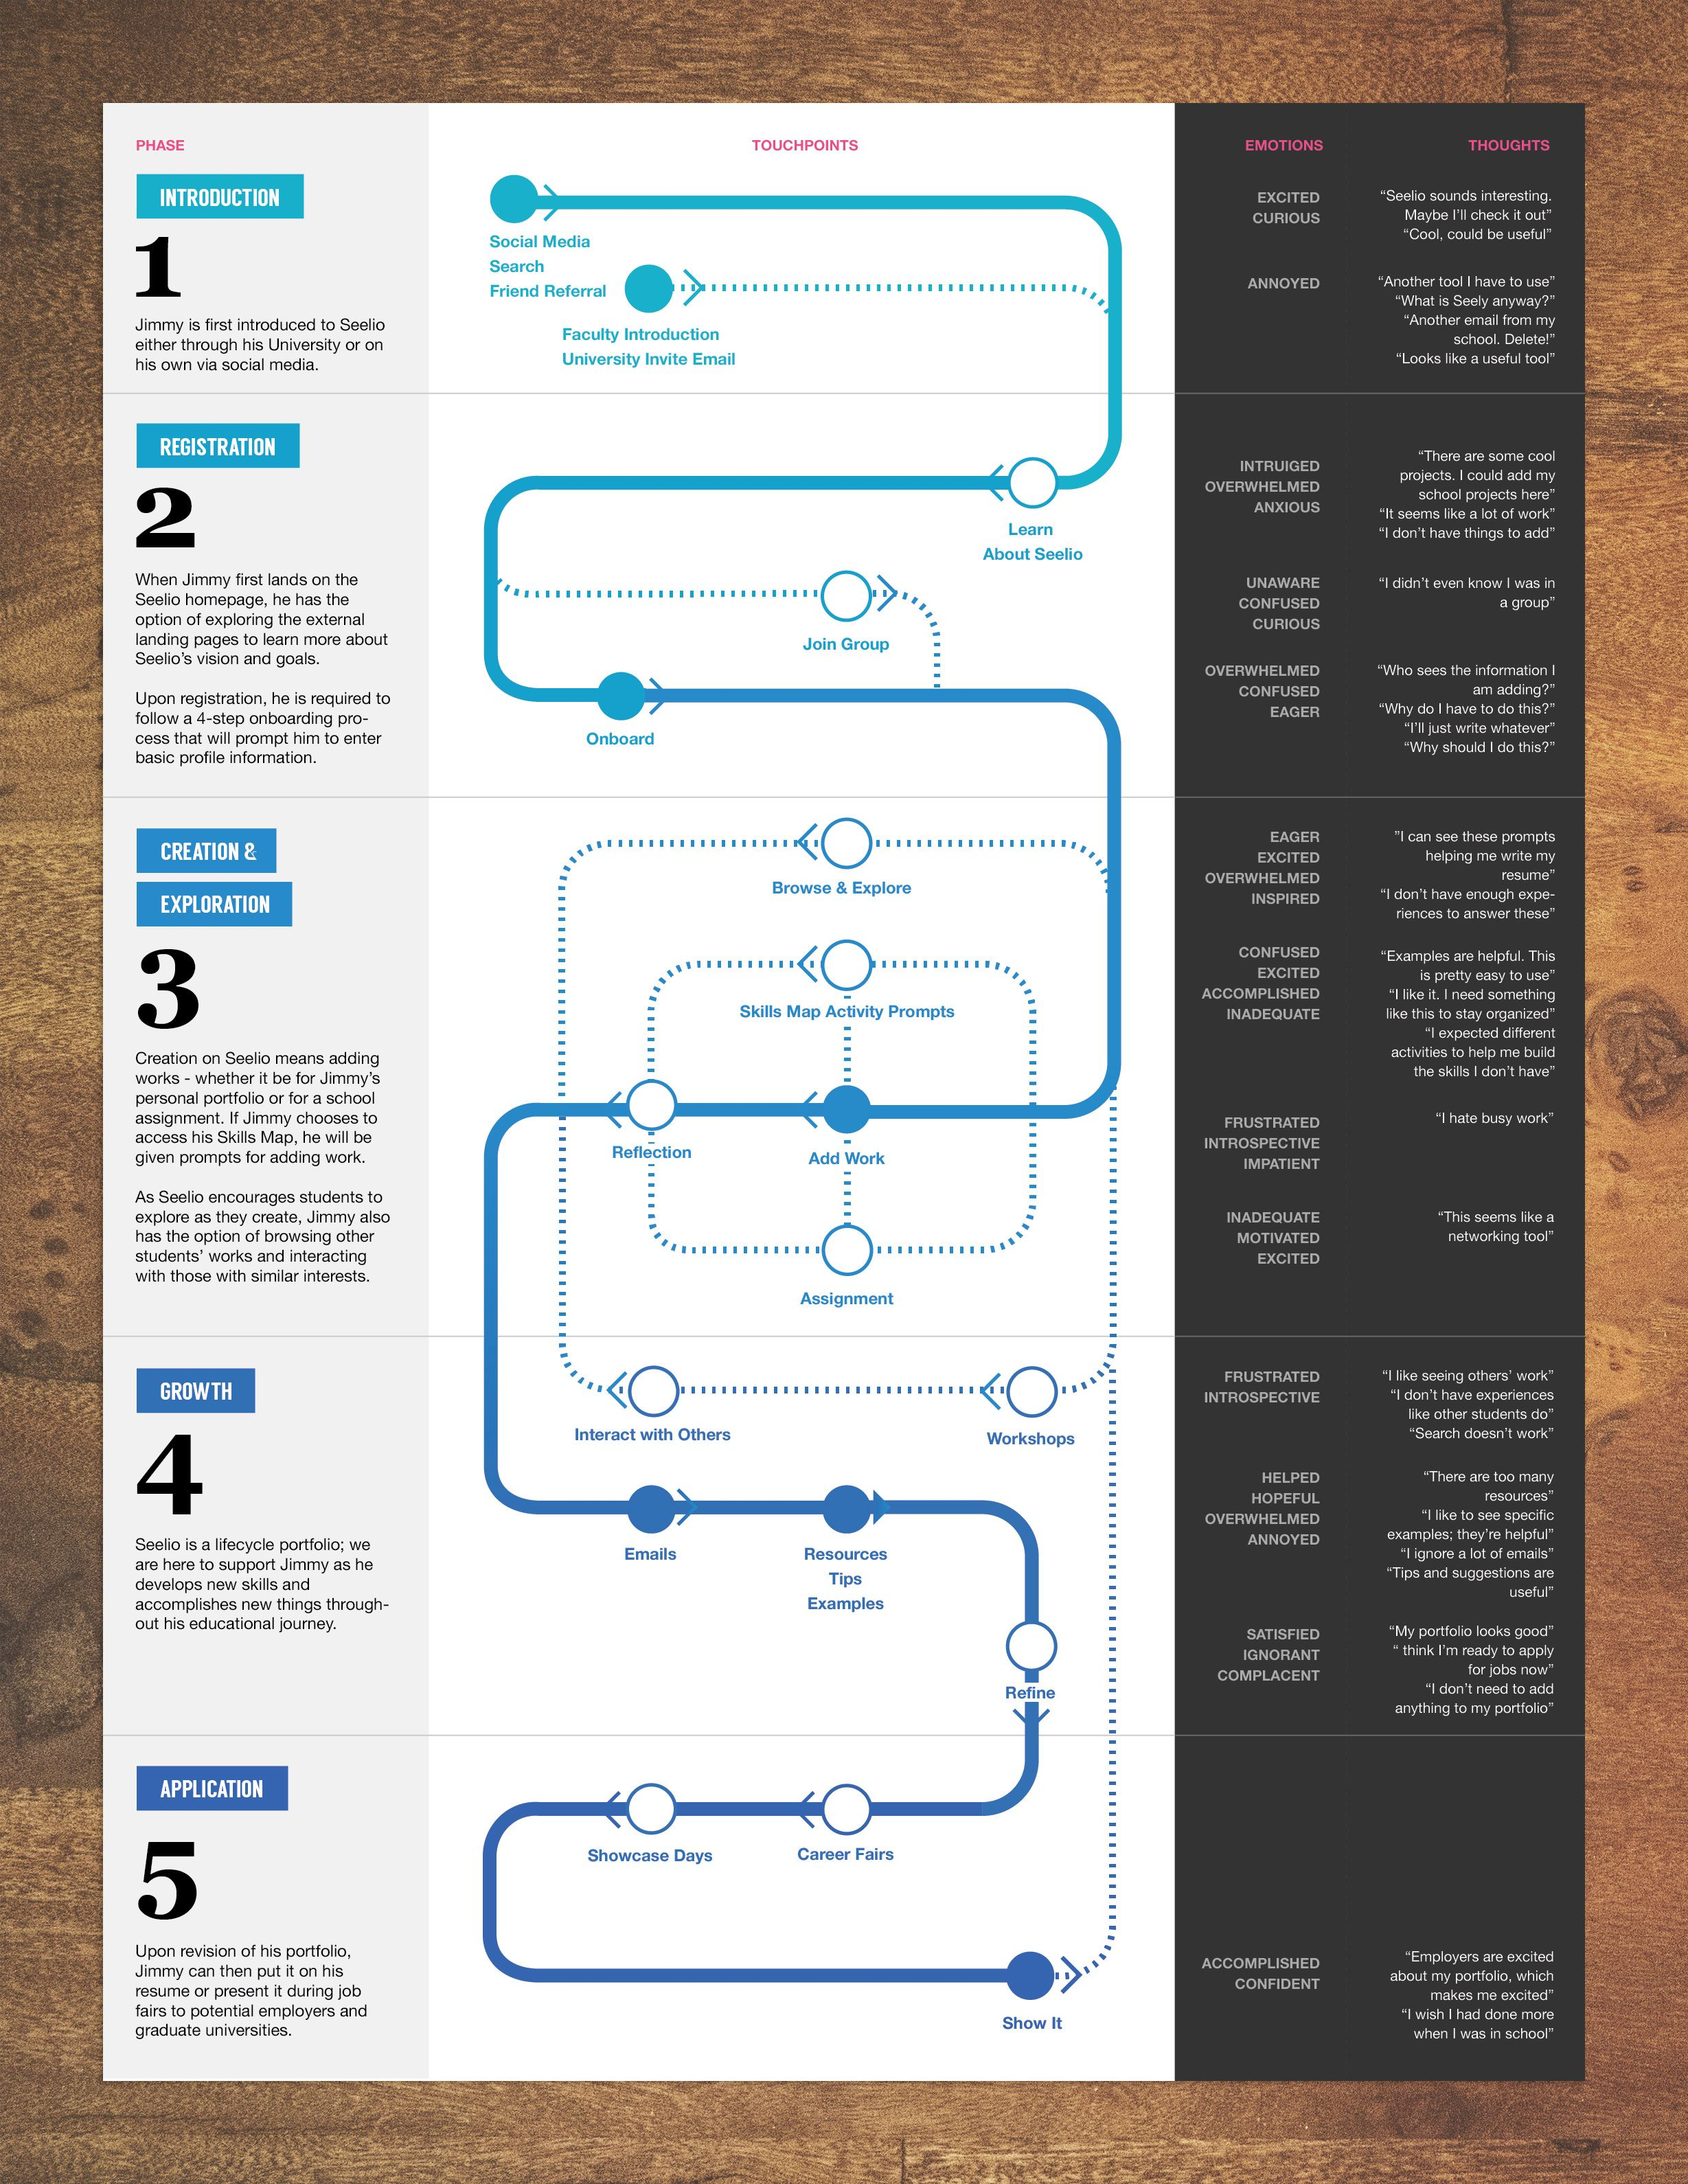 Student Journey Map Journey Maps Pinterest Service Design And - Student journey mapping